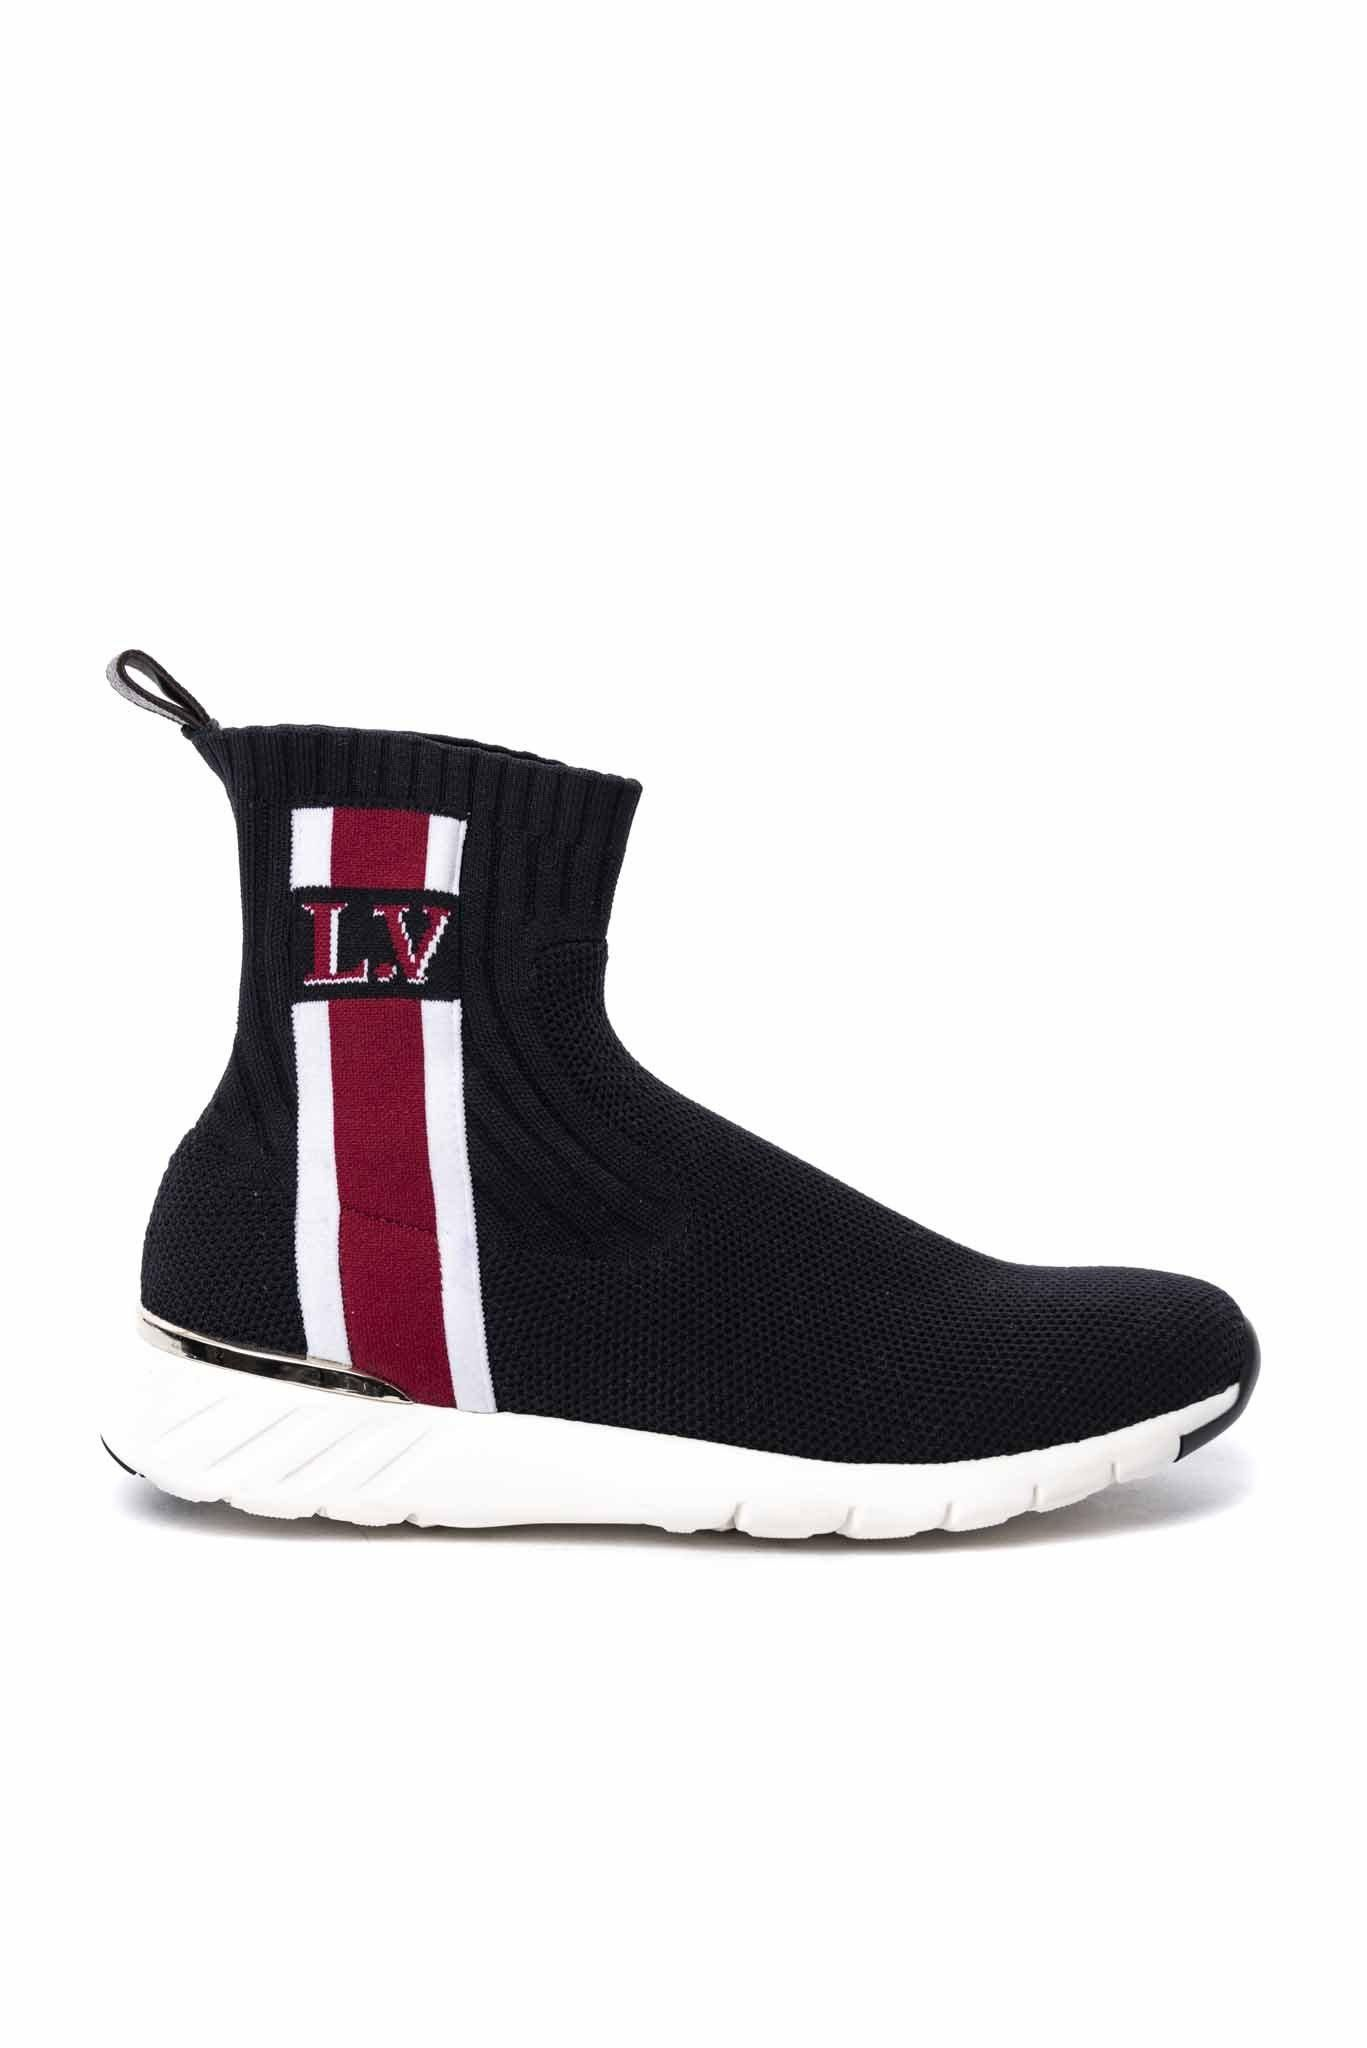 Louis Vuitton 'aftergame' Sneaker Boot